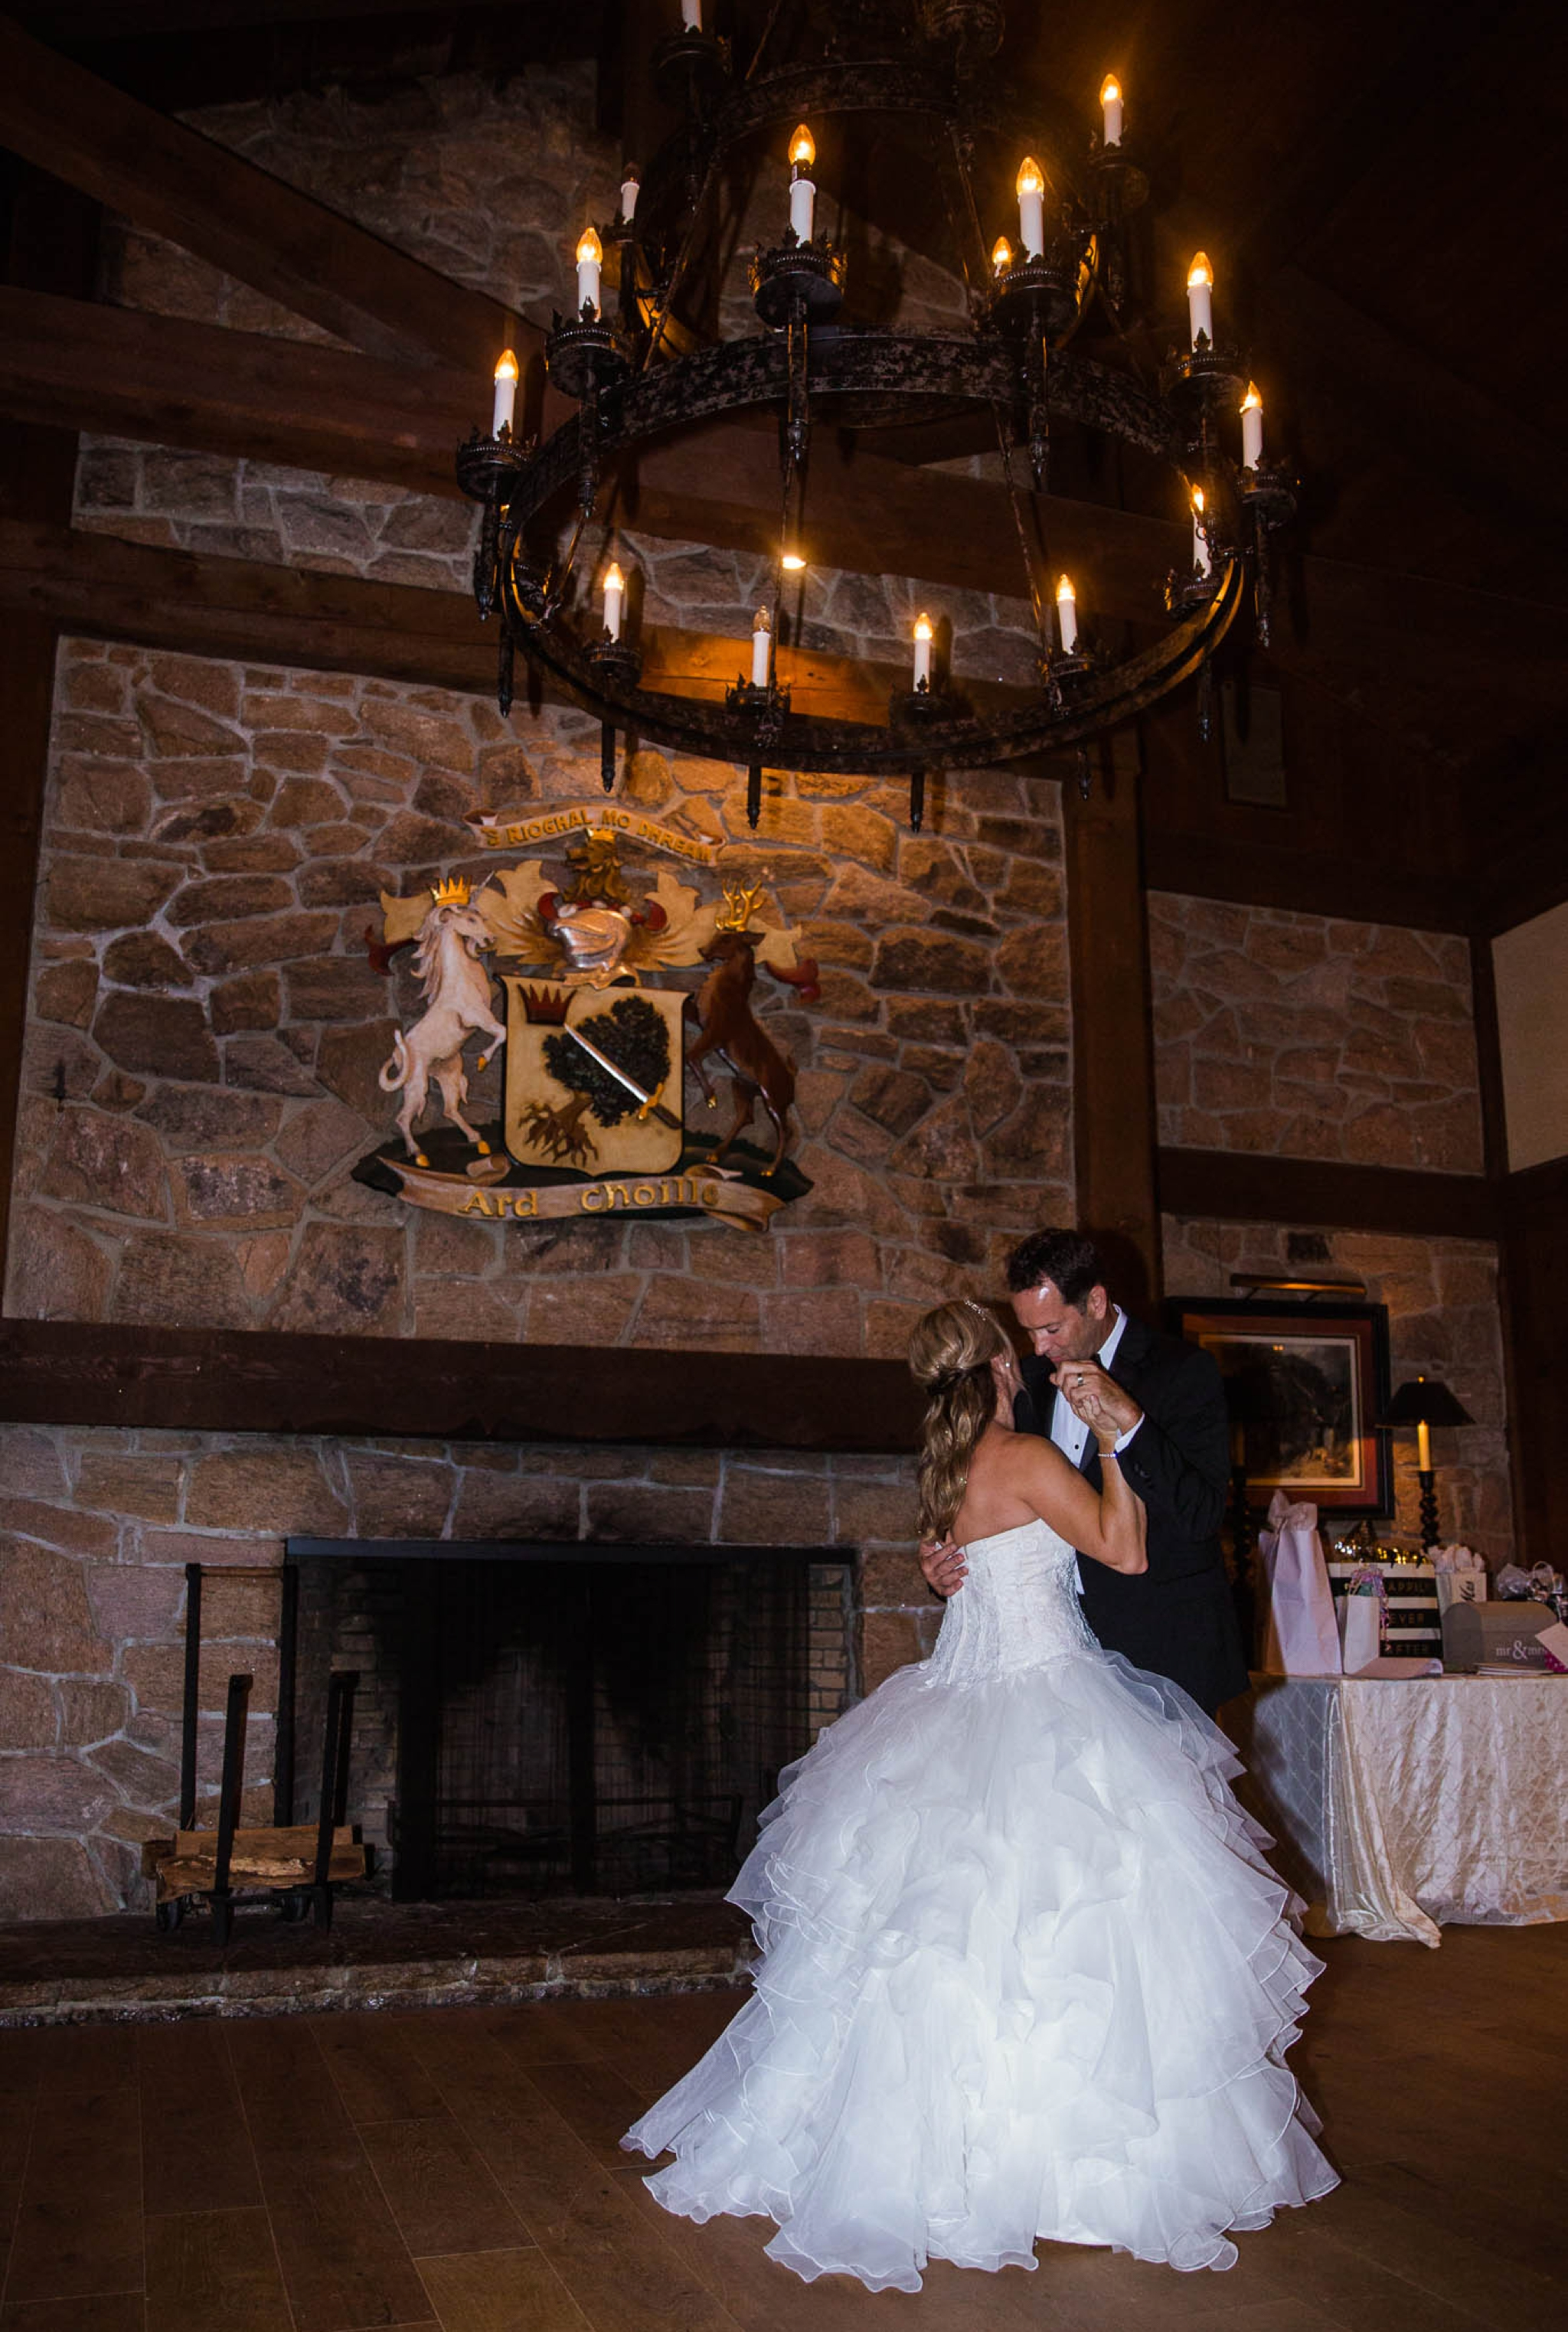 First Dance between bride and groom - Dona + Doug - MacGregor Downs Country Club in Cary, NC - Raleigh Wedding Photographer